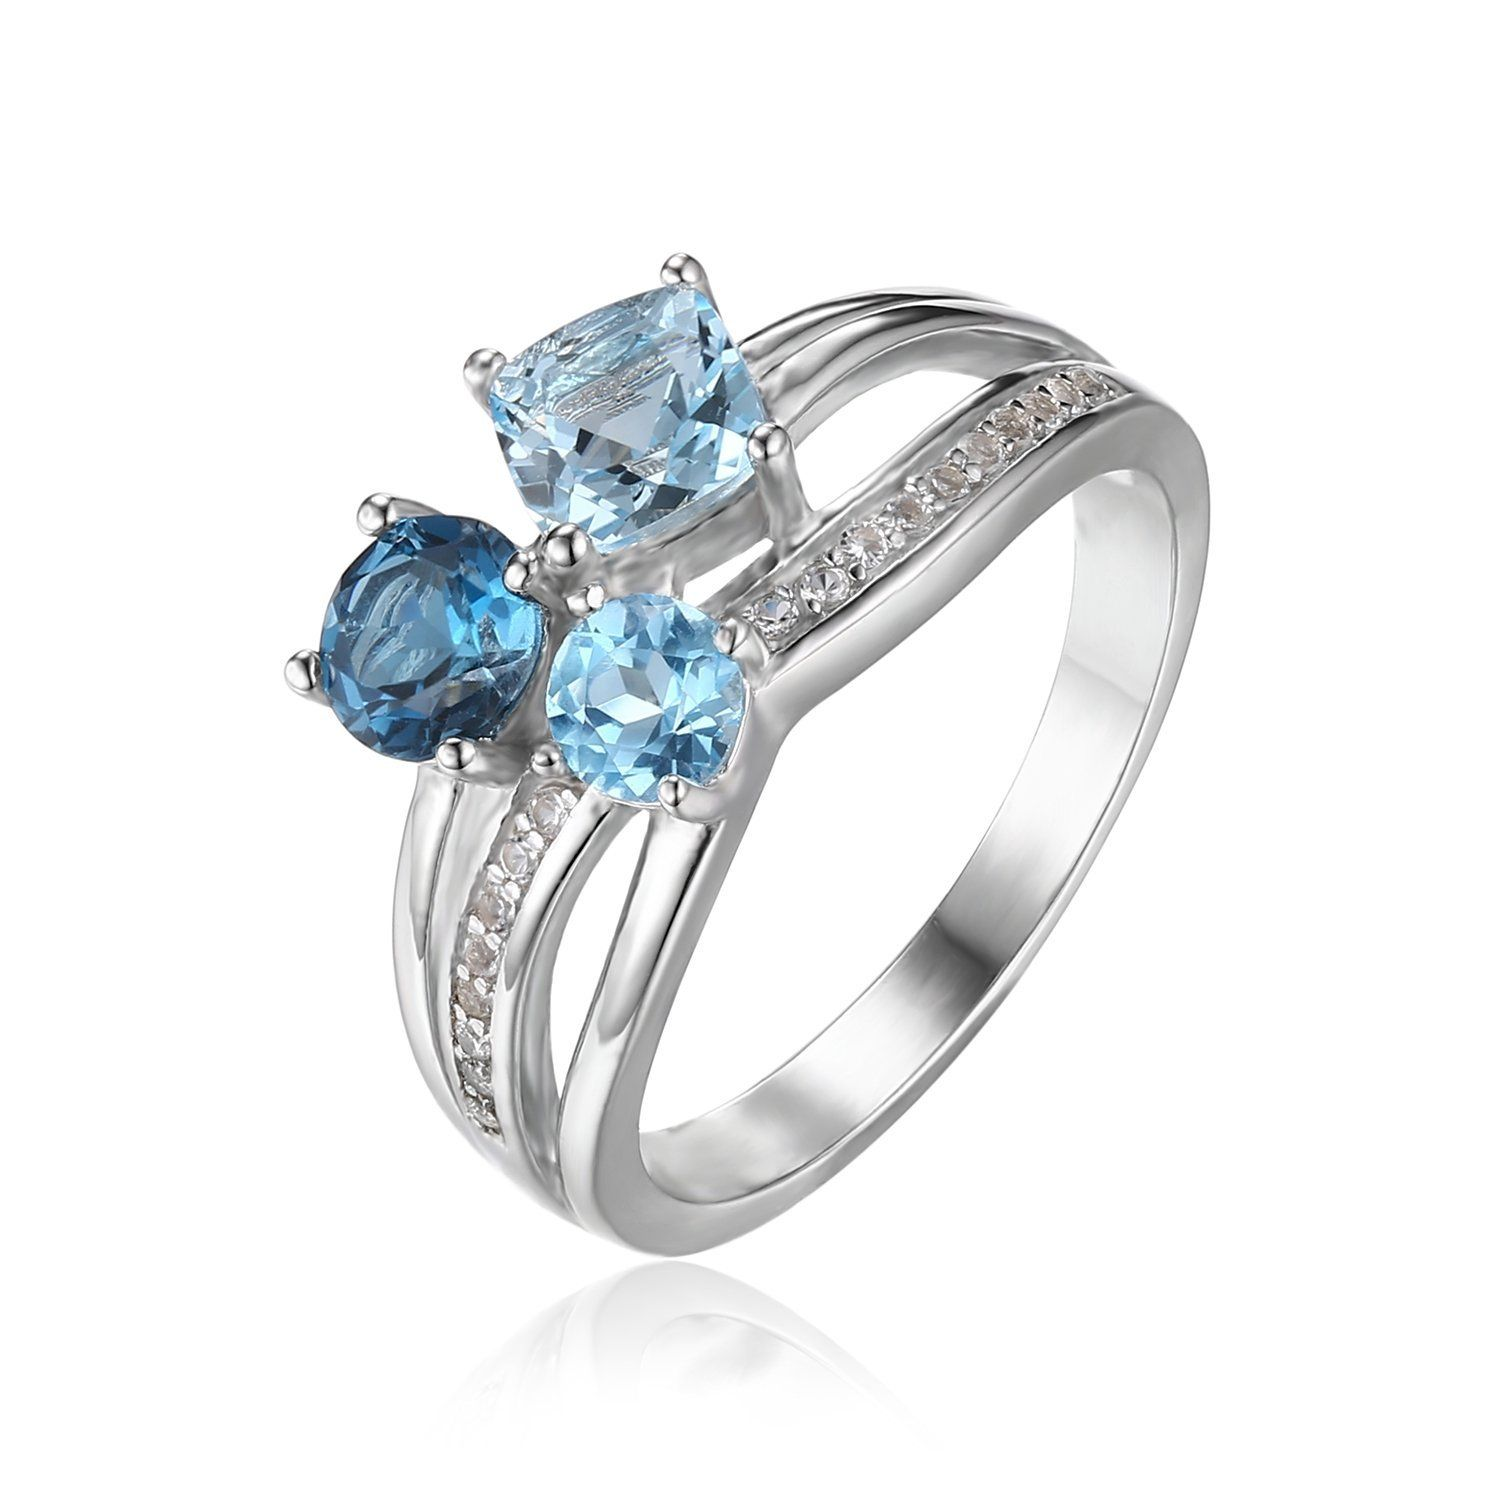 JewelryPalace 1.7ct Genuine Multi Swiss London Blue Topaz 3 Stones Ring 925 Sterling Silver 7EGLpENm